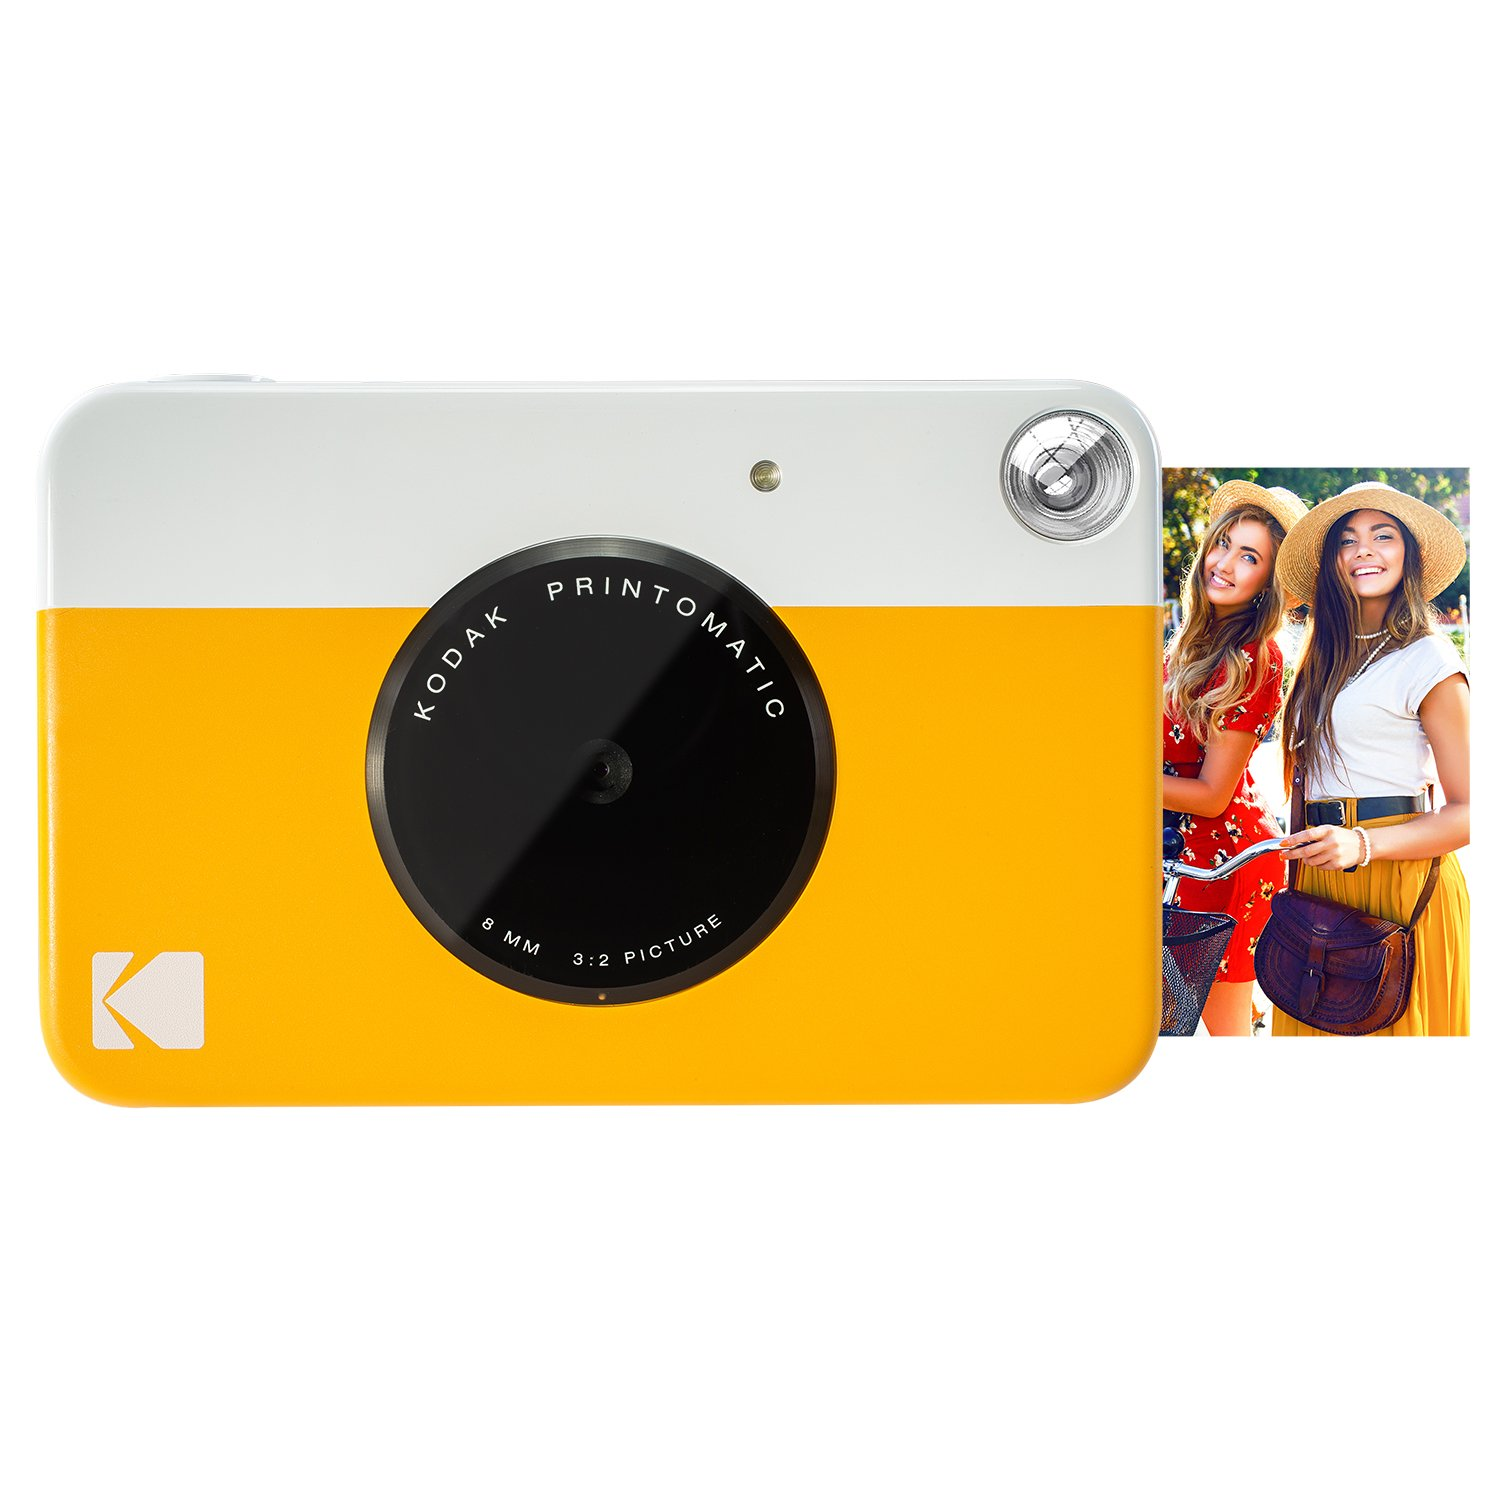 Kodak PRINTOMATIC Digital Instant Print Camera (Yellow), Full Color Prints On ZINK 2x3'' Sticky-Backed Photo Paper - Print Memories Instantly by Kodak